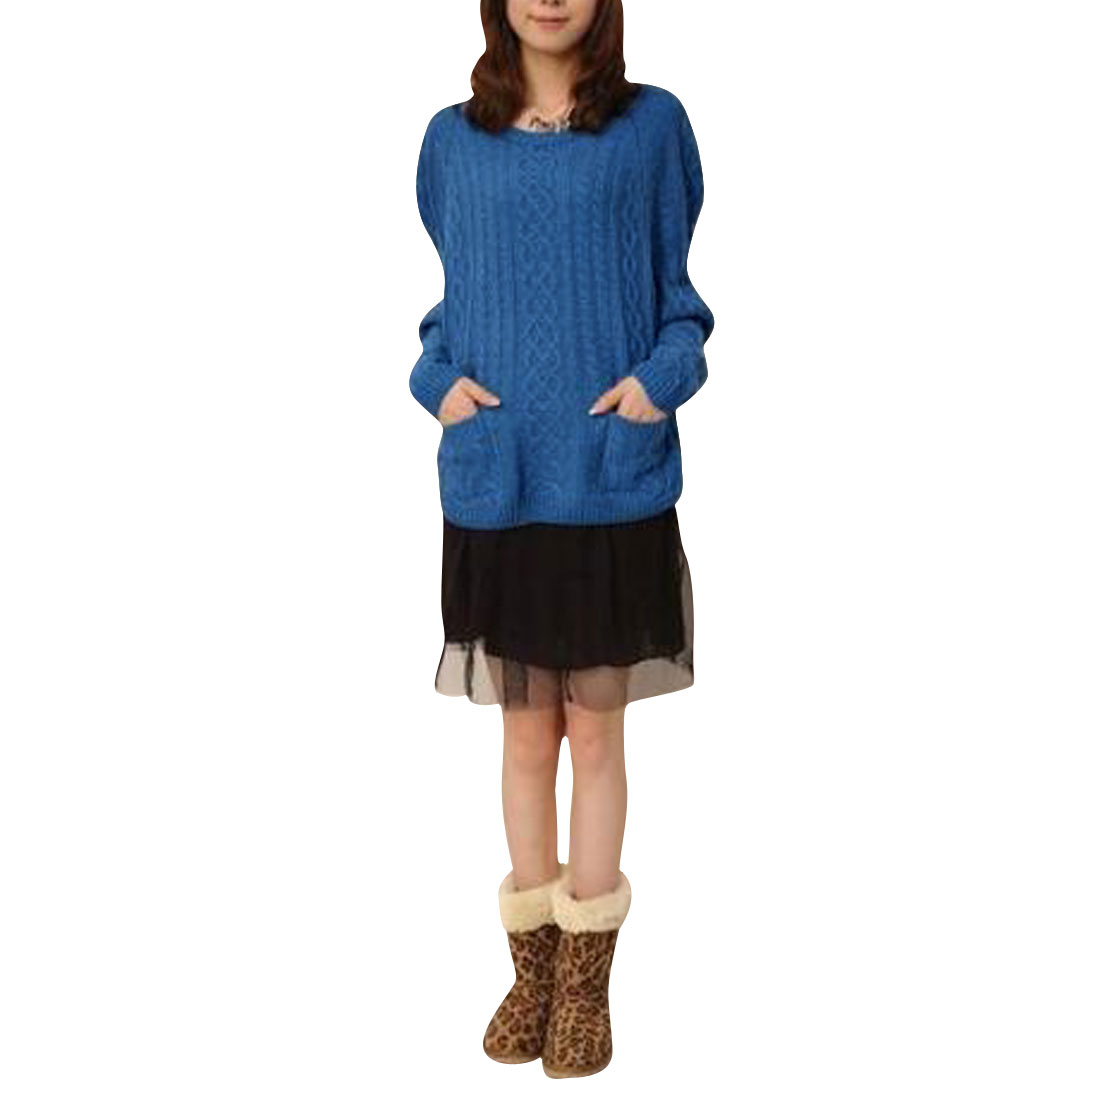 Ladies Blue Crew Neck Raglan Sleeve Pullover Autumn Textured Sweater S